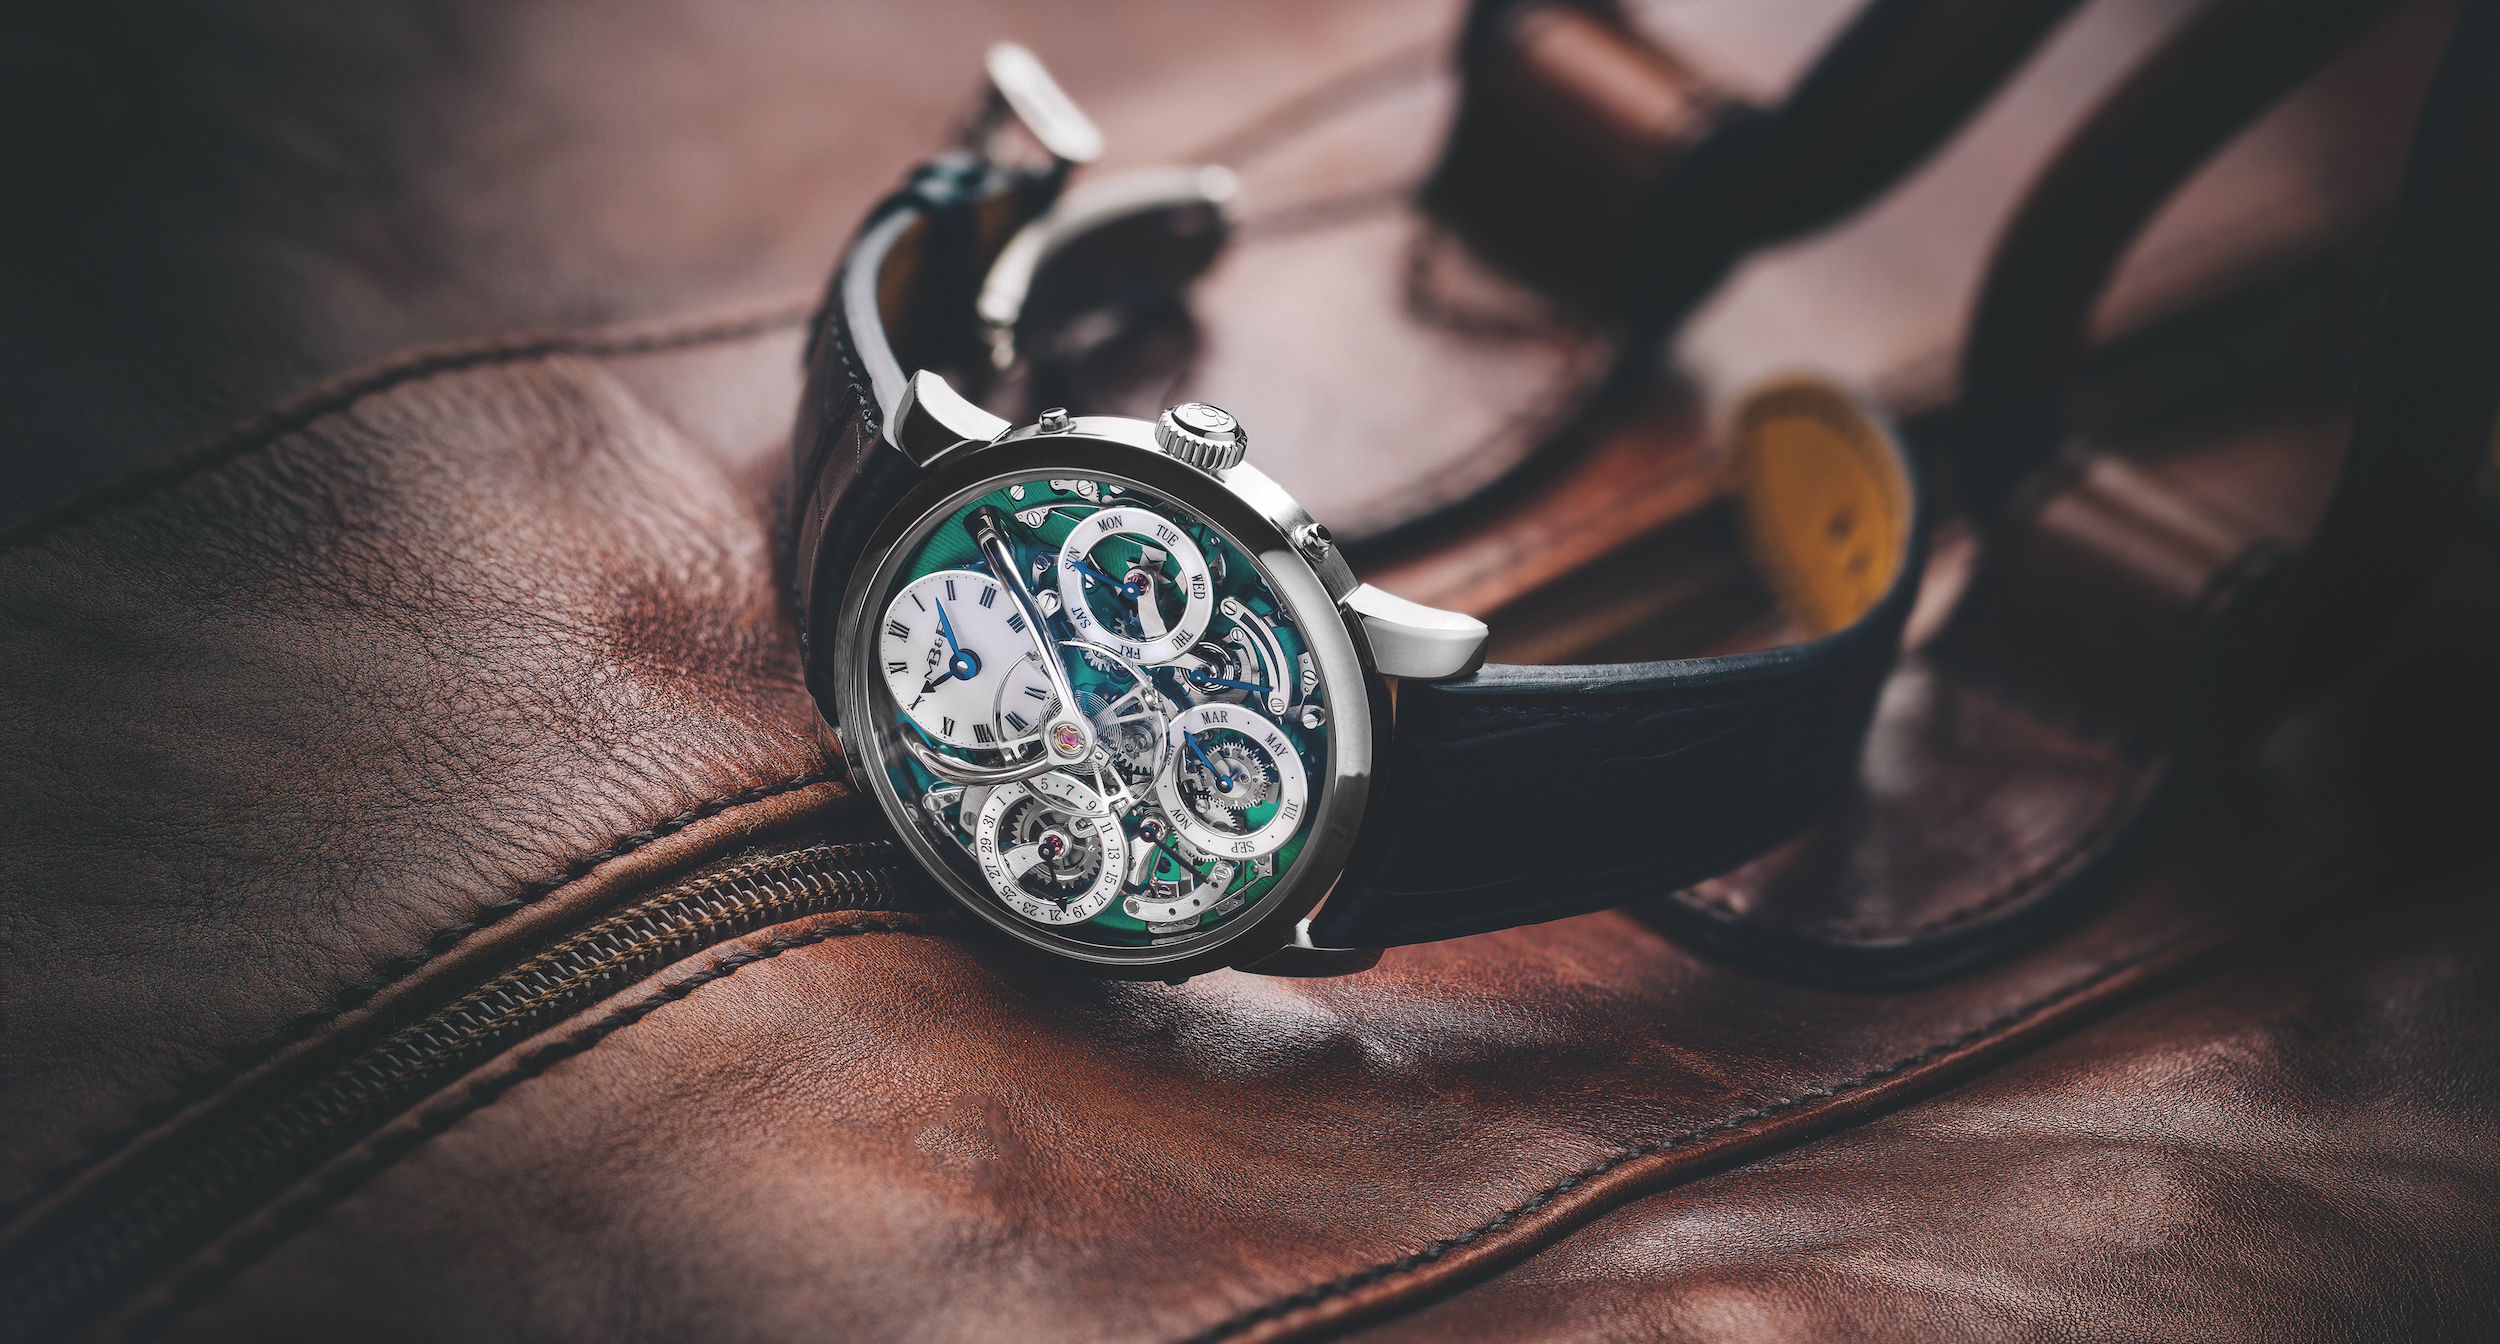 How perpetual calendars channel the romance of 'forever' in watches